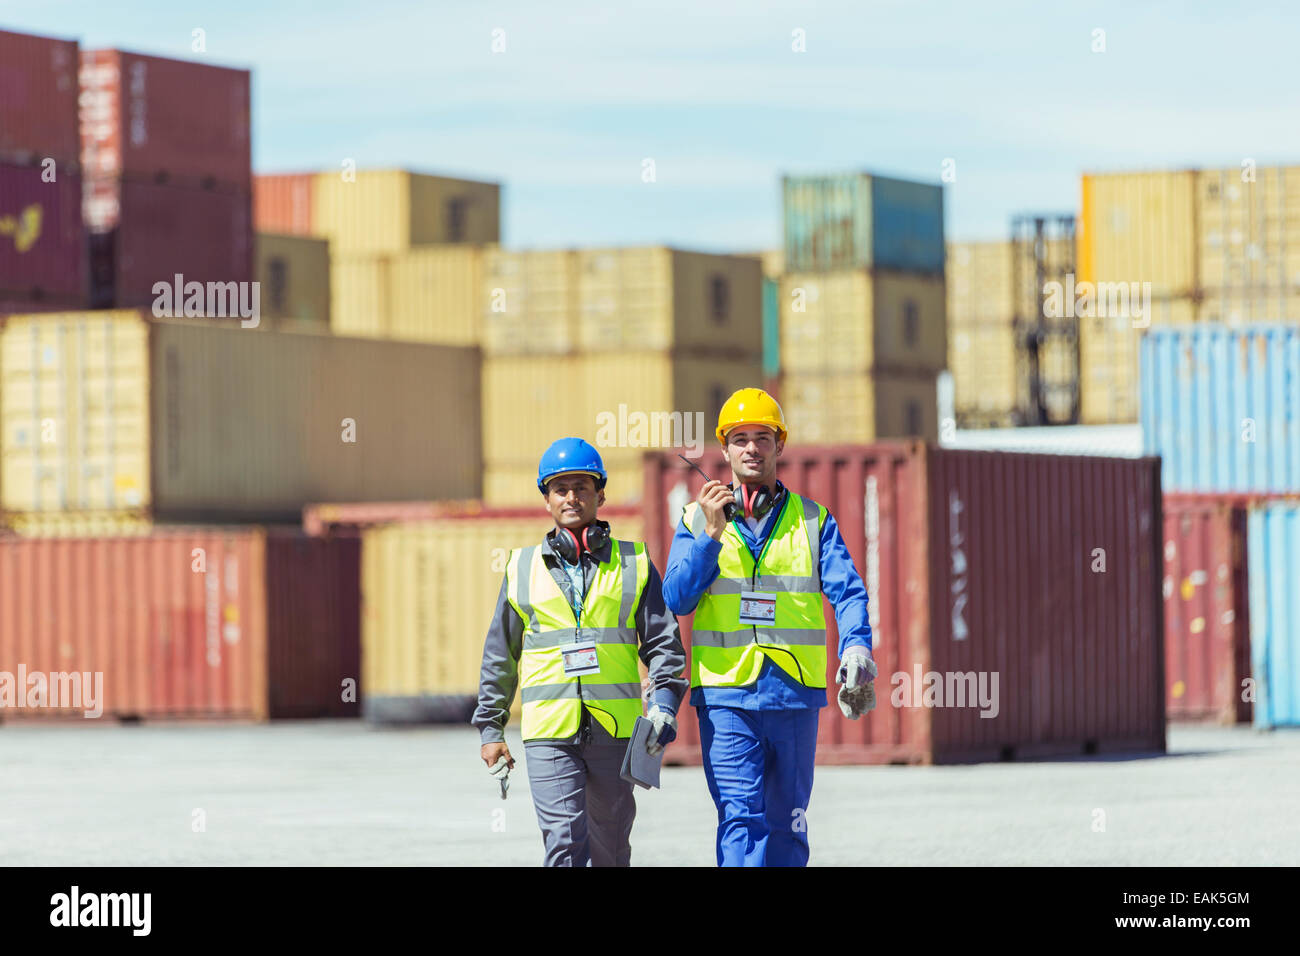 Worker and businessman walking near cargo containers - Stock Image